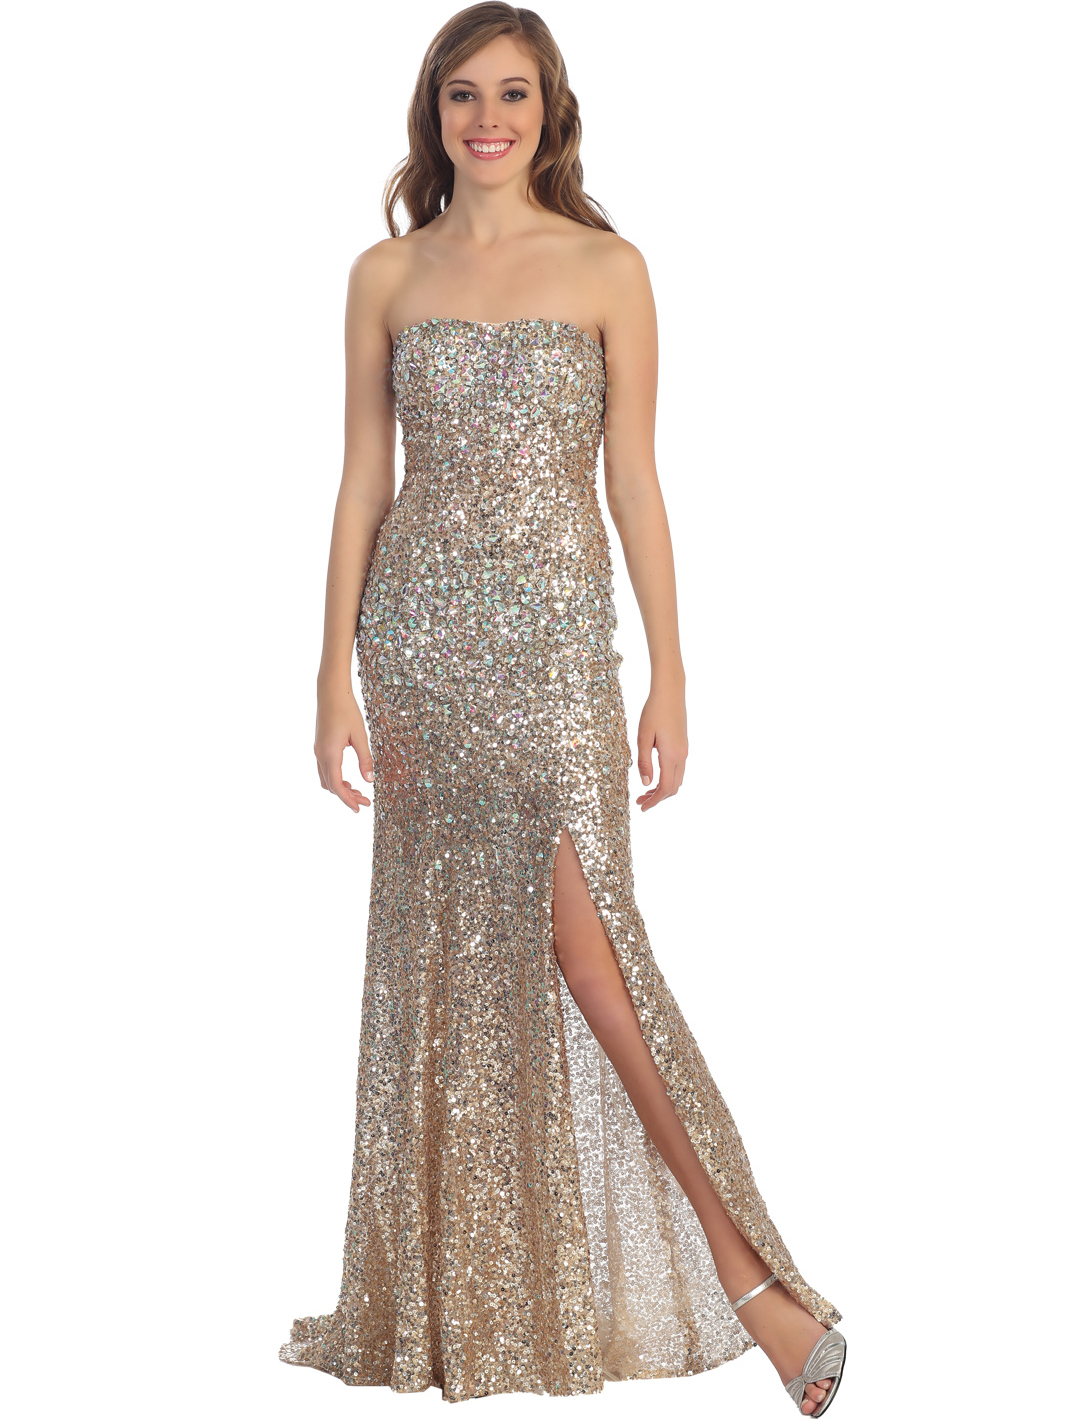 Fashion style Strapless gold sequin prom dress for girls